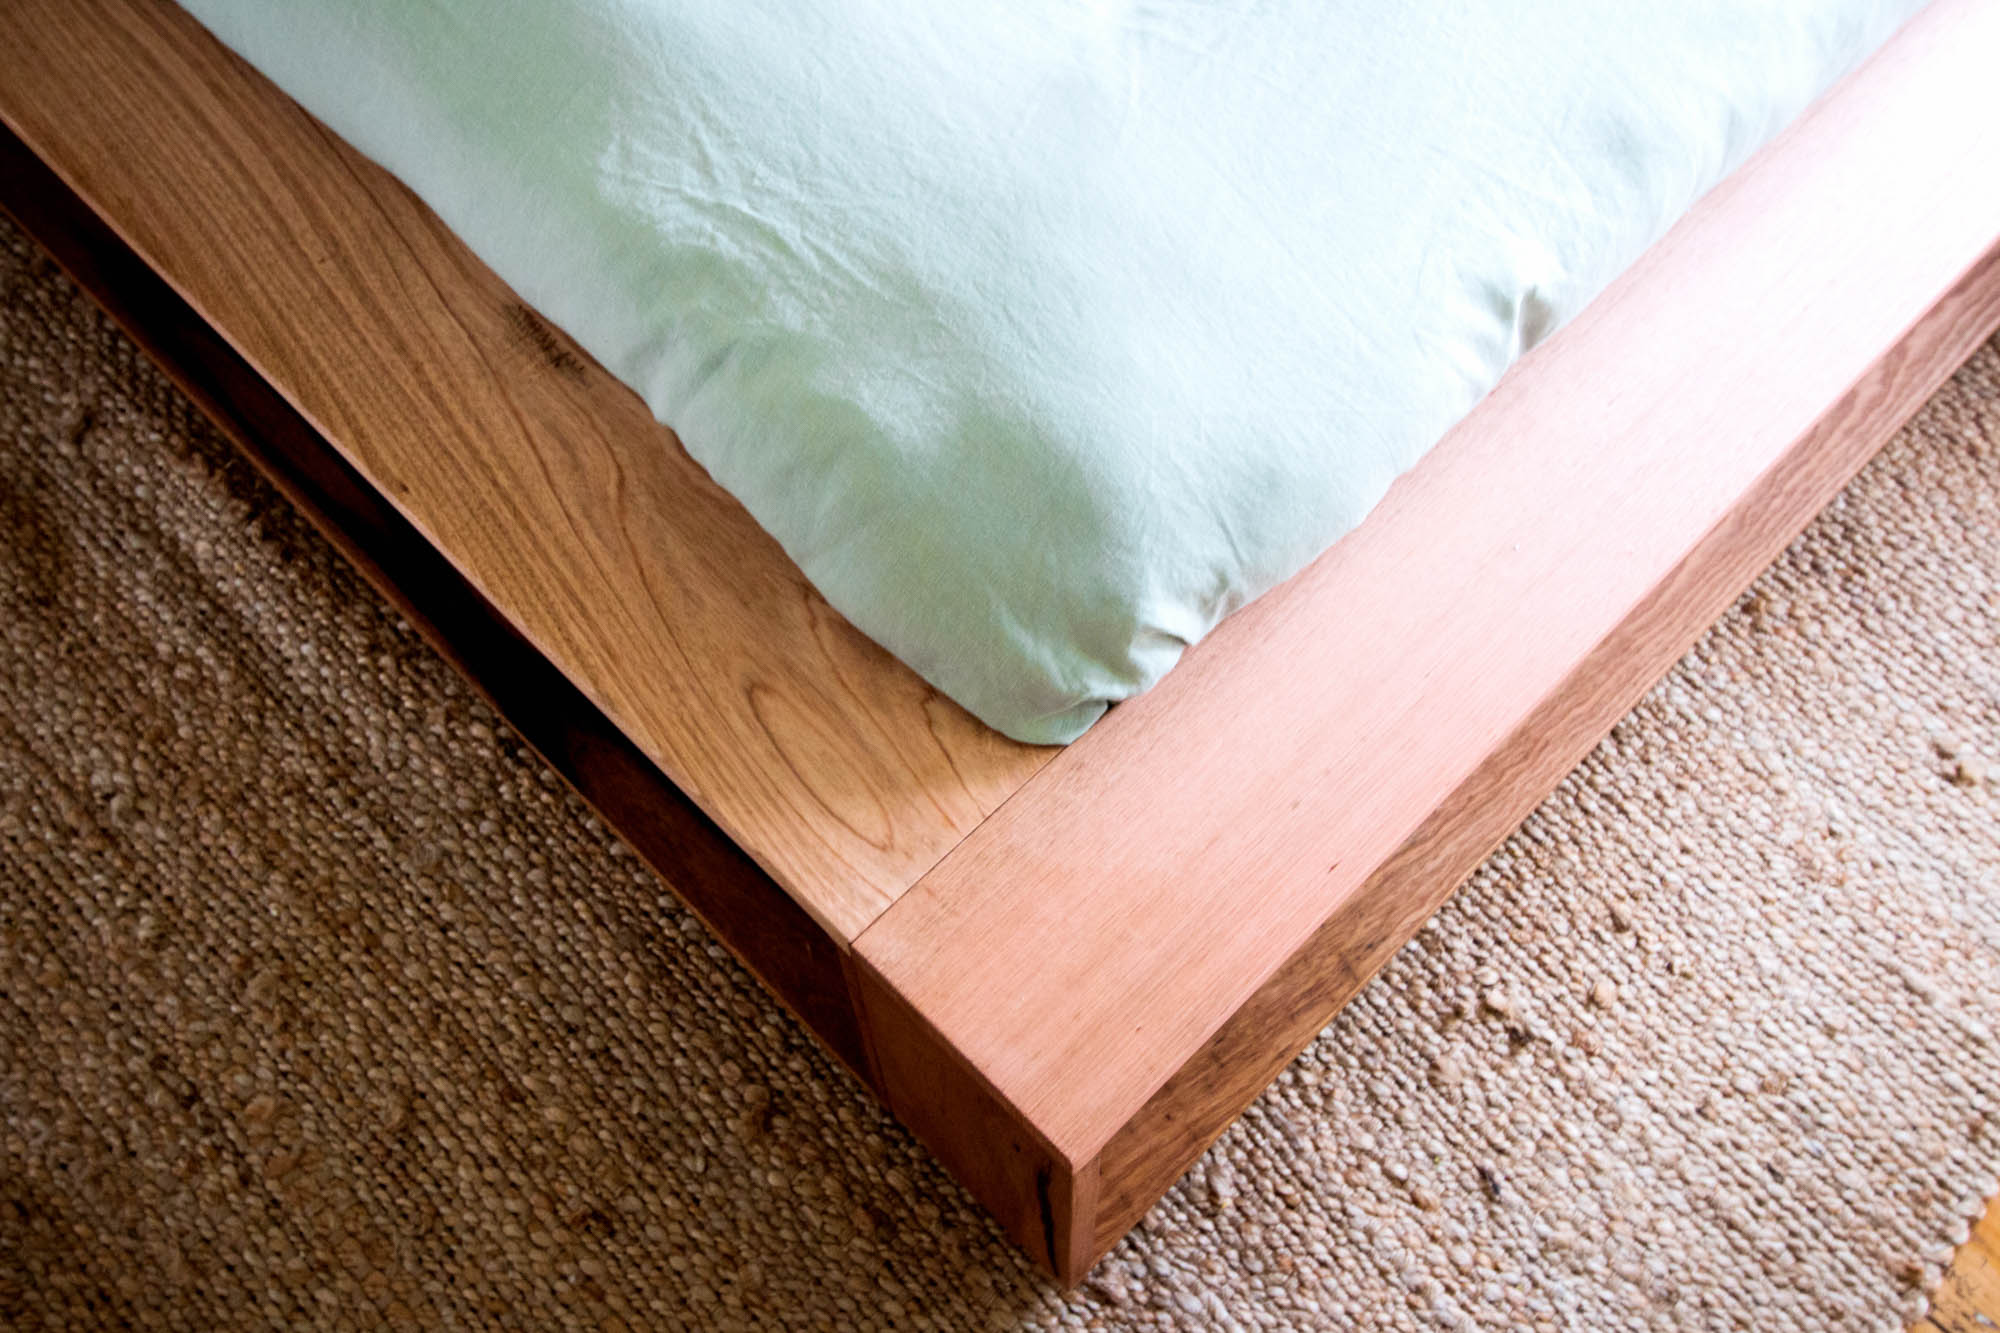 Al and Imo Handmade - Bookshelf Bedhead Platform Bed - Custom made from recycled timber - Australia - Melbourne - Surf Coast-20.jpg